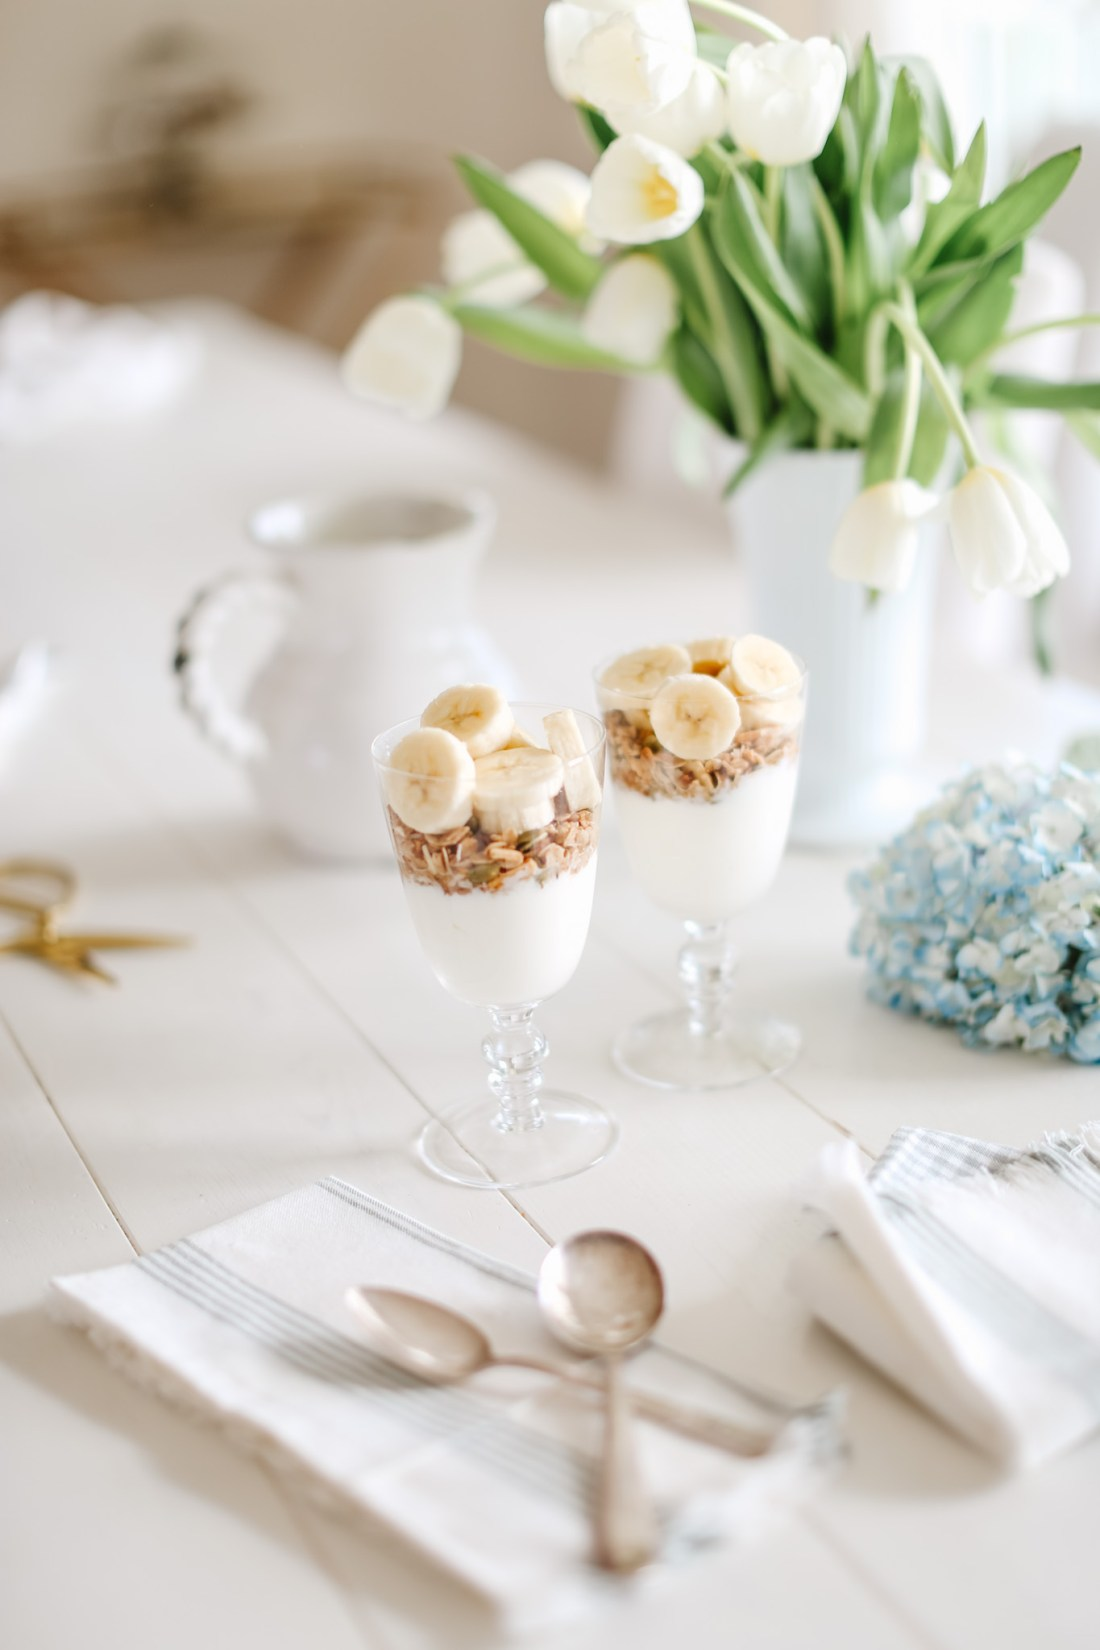 Banana Parfaits from the Fraiche at Home Meal Plan